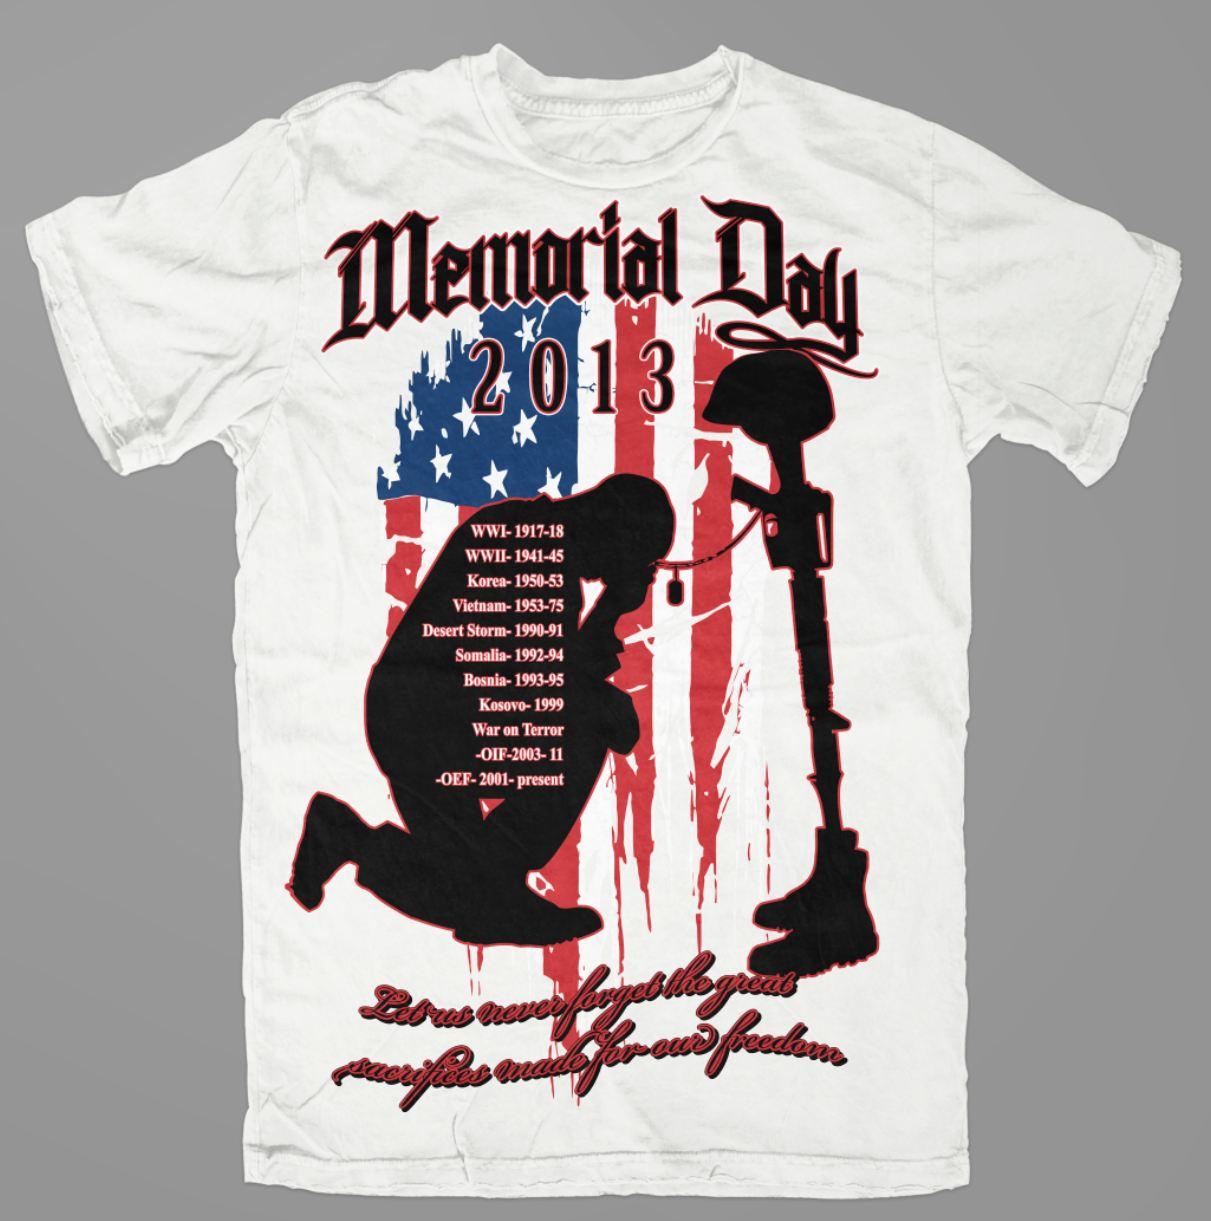 When is Memorial Day 2016 in usa